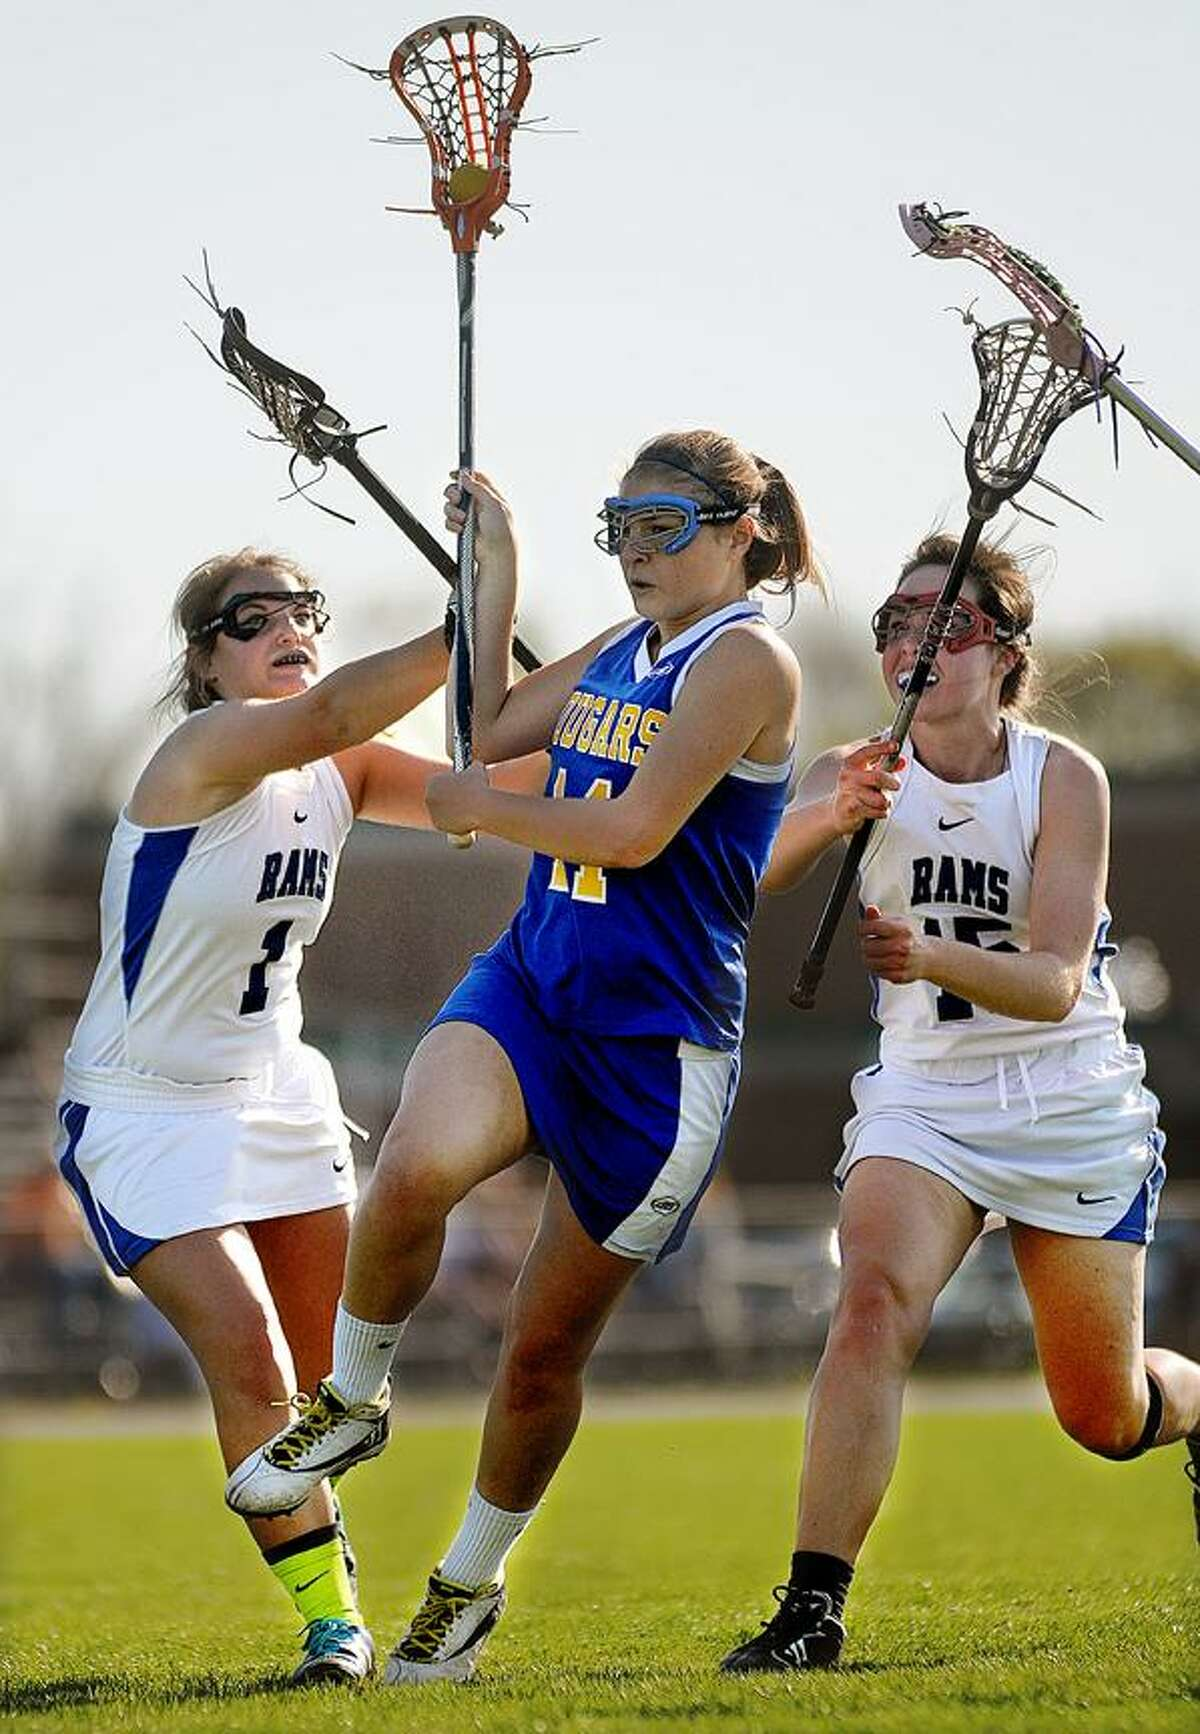 Catherine Avalone/The Middletown PressHaddam-Killingworth junior Susanne Pasqualini plows through Old Saybrook defenders Julia DePalermo (1) and Hudson Roarick (15) Thursday afternoon in Old Saybrook to score. H-K defeated Old Saybrook 17-9.